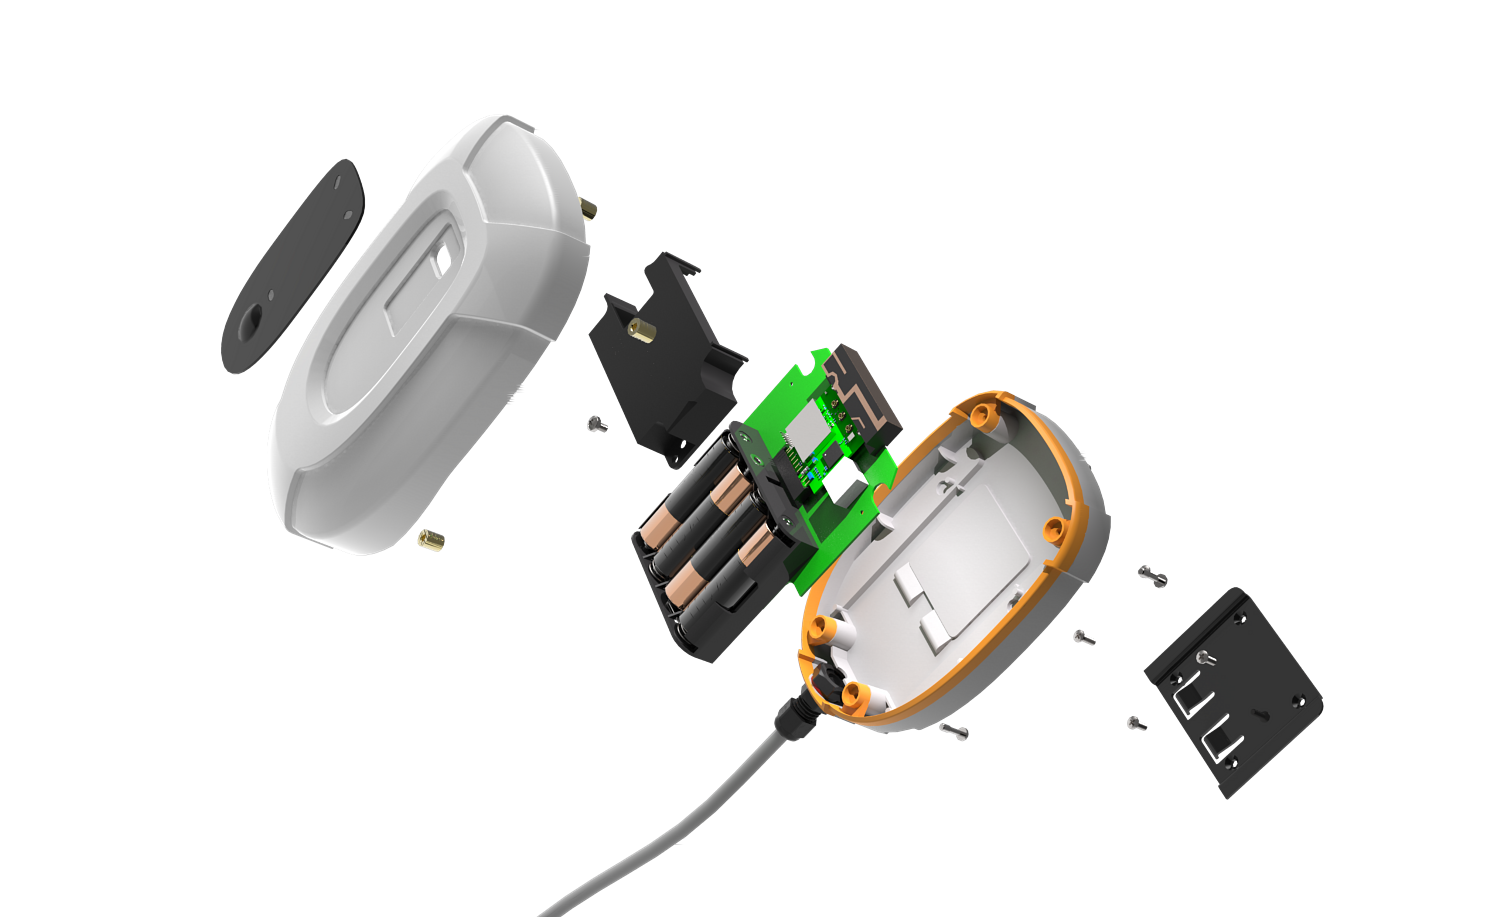 Exploded view of device components